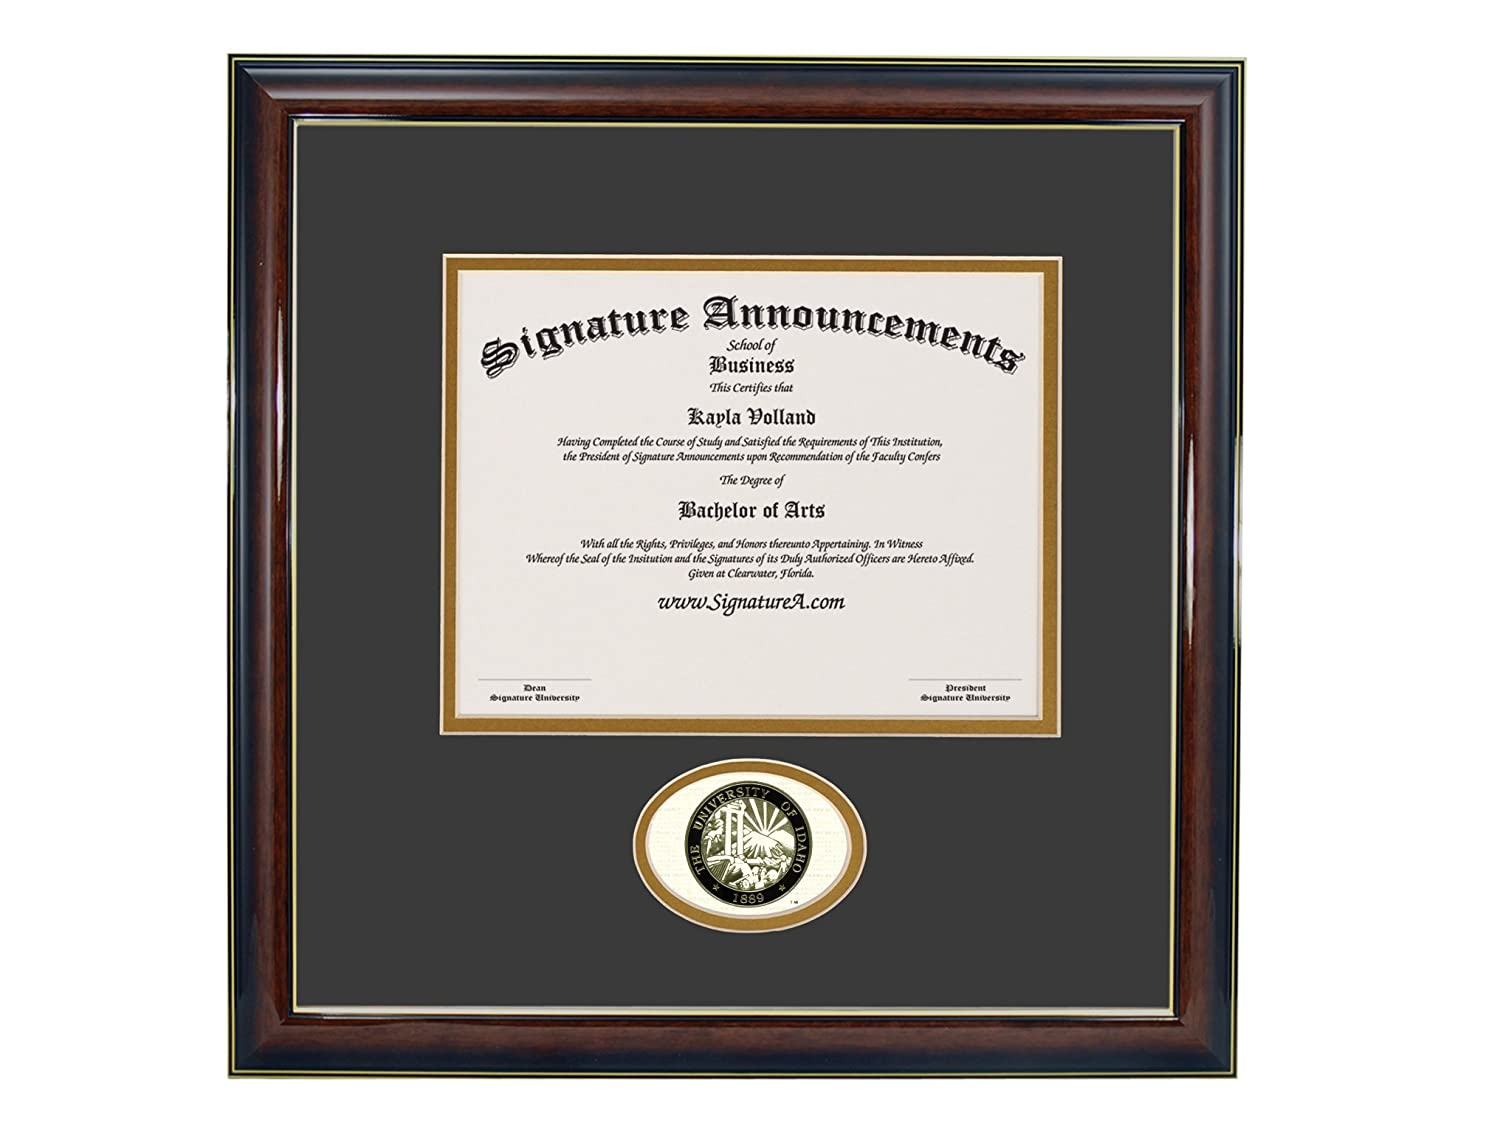 Signature Announcements University-of-Idaho Doctorate Sculpted Foil Seal Graduation Diploma Frame Gold Accent Gloss Mahogany 16 x 16